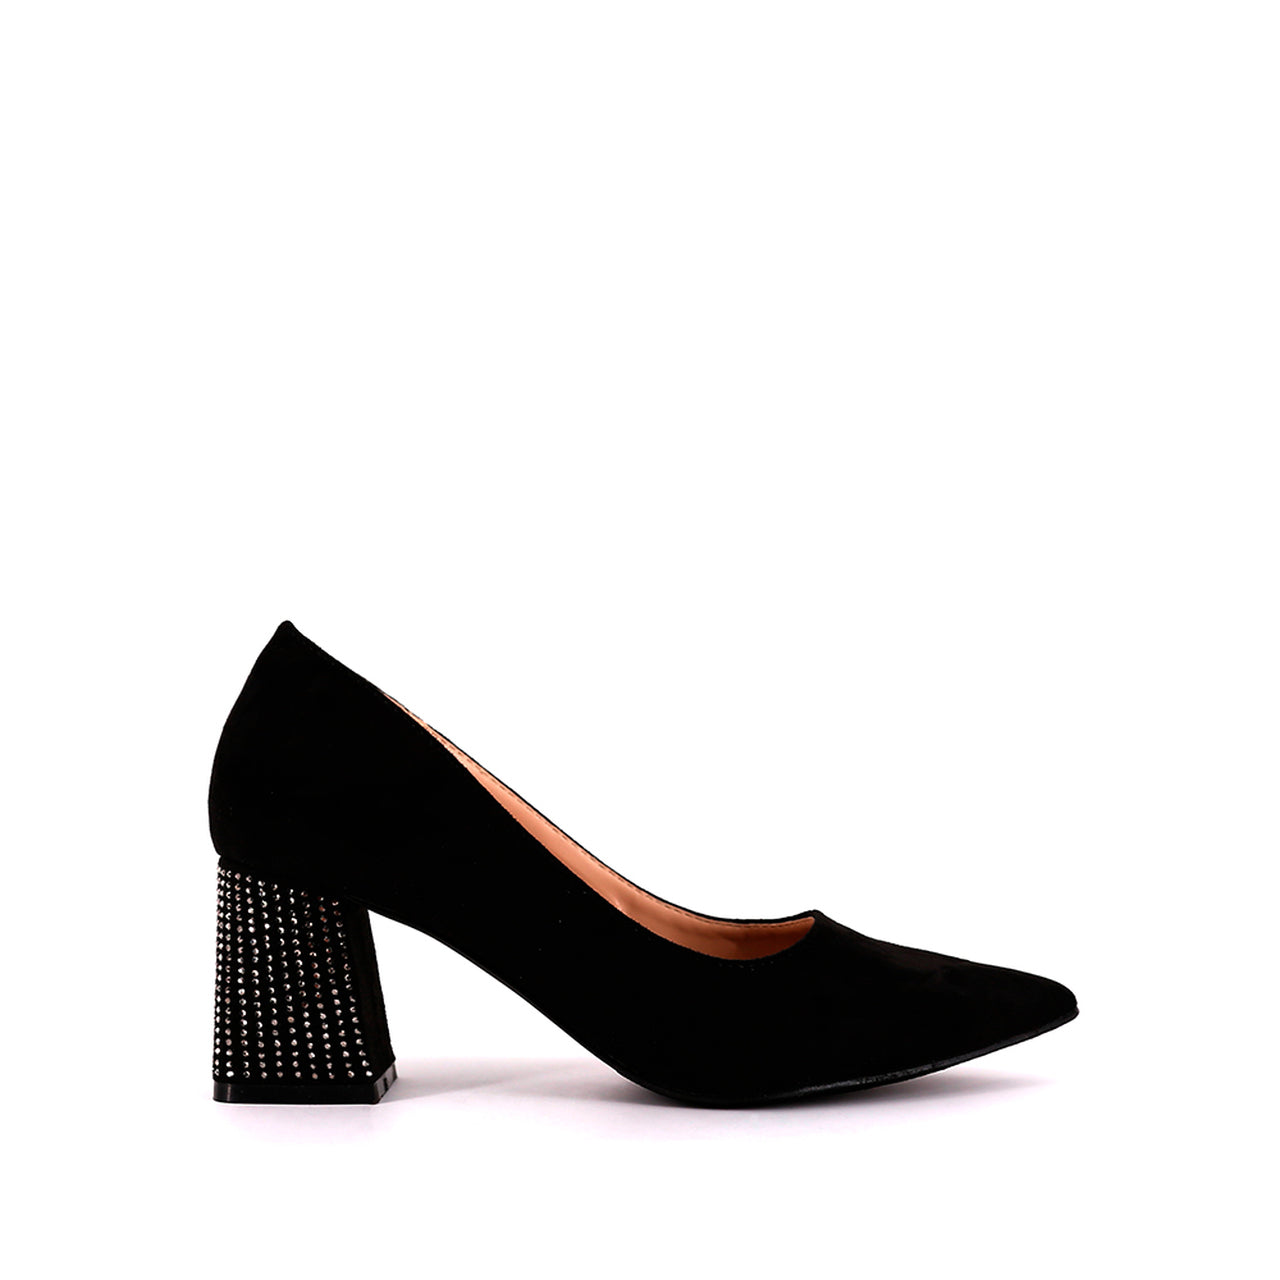 Shu Shop Odette in Black Shoes - Sophie